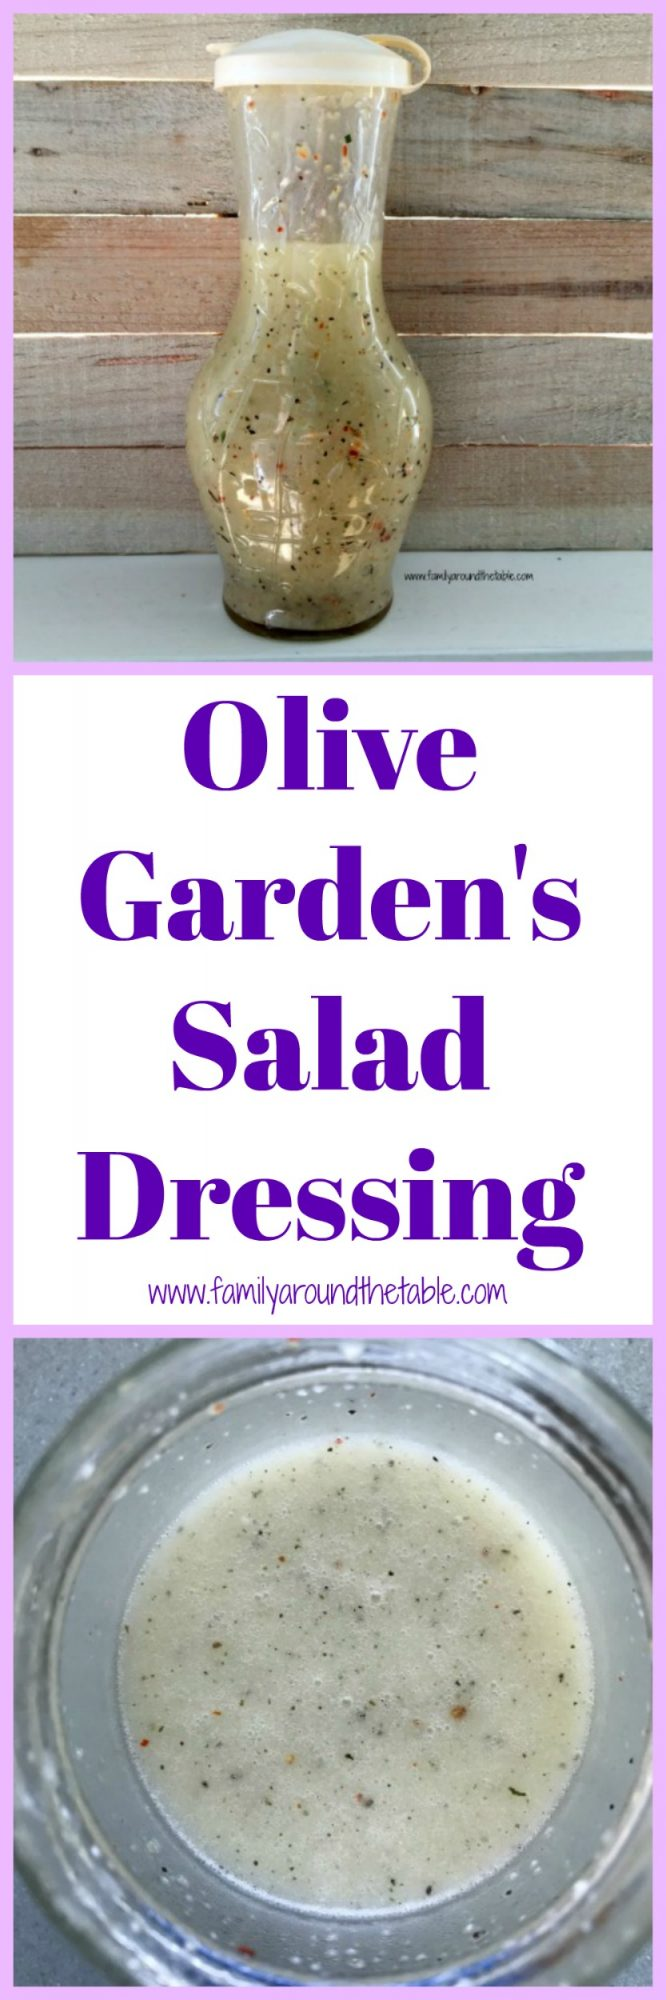 Olive Garden S Salad Dressing Copycat Family Around The